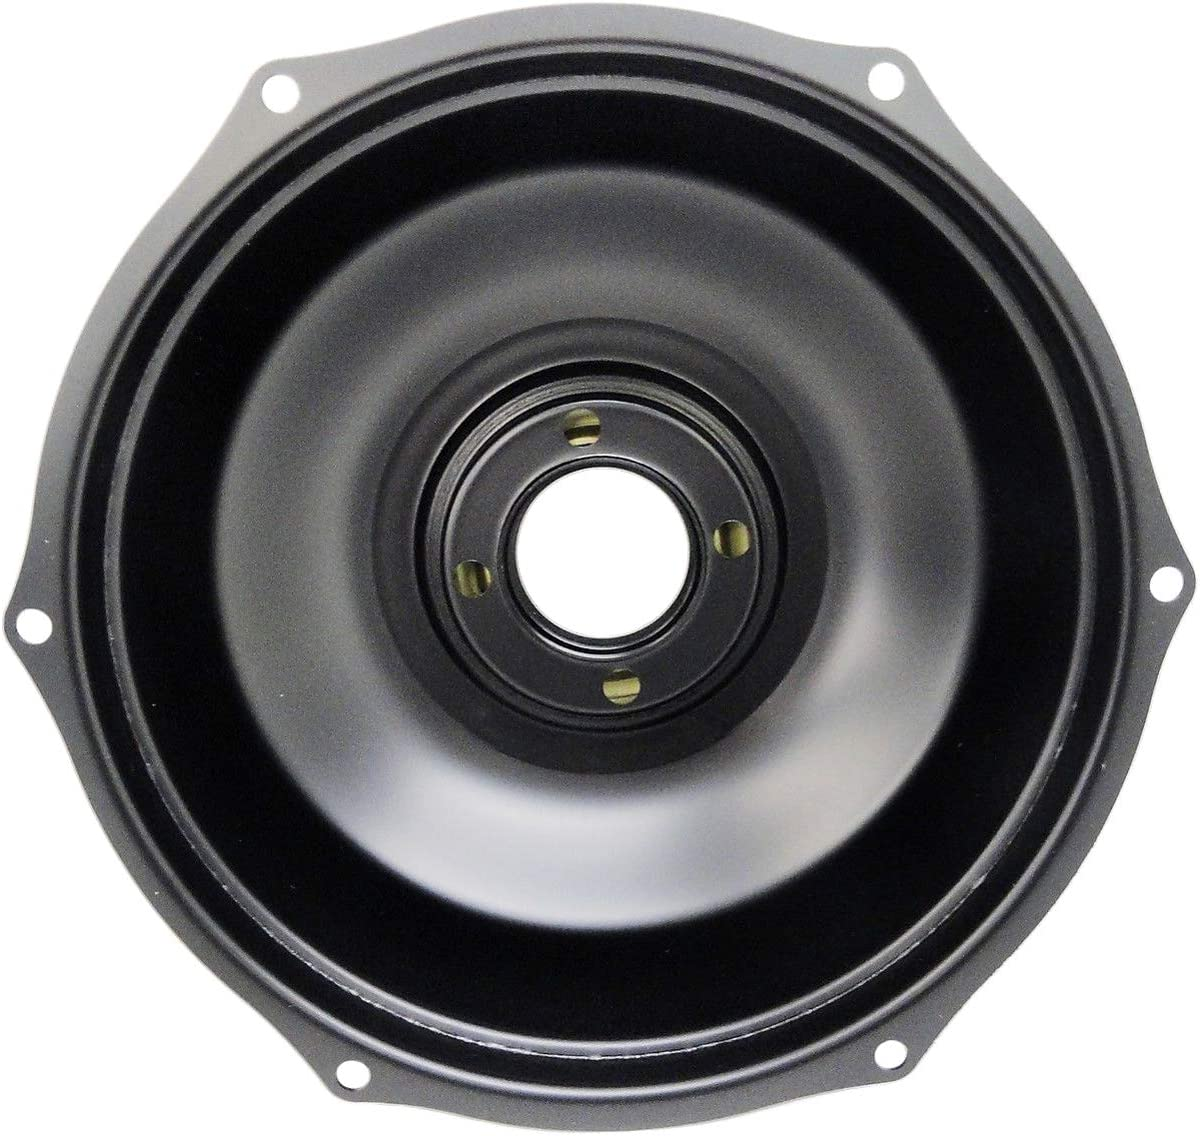 Compatible with Honda Fourtrax TRX300 TRX 300 2x4 4x4 Rear Brake Drum Cover /& Backing Plate Kit